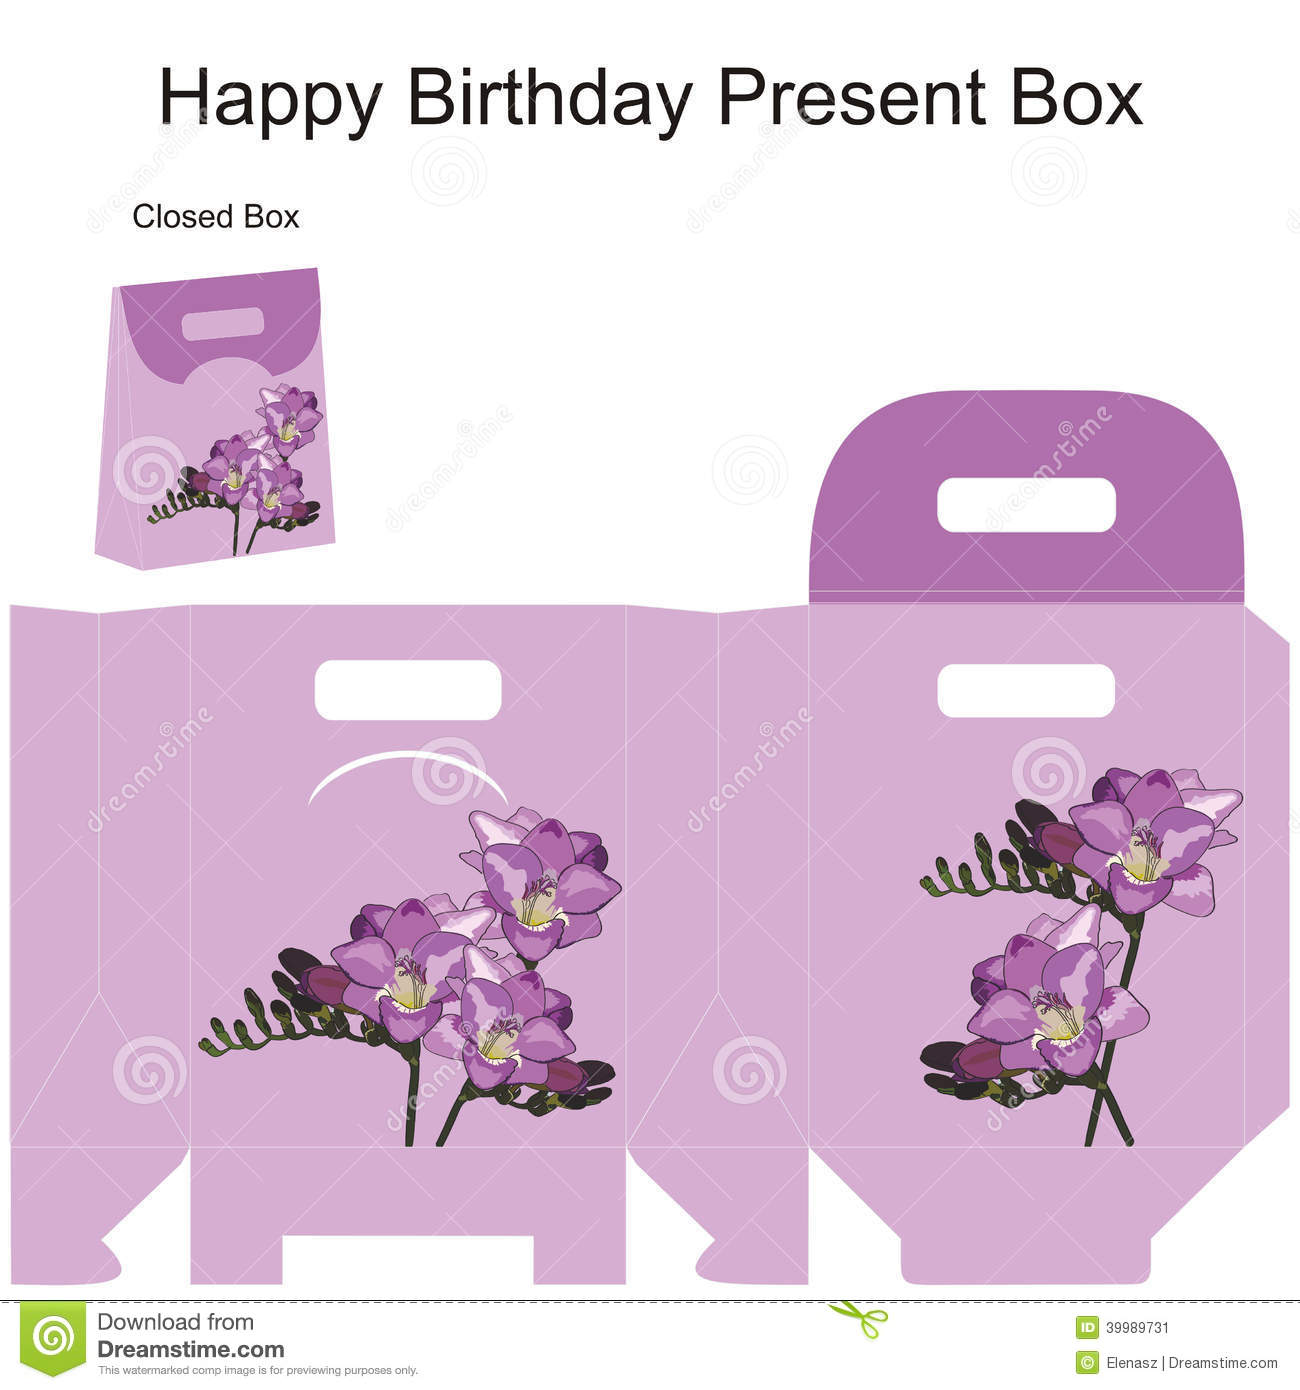 Wedding Favor Gift Box Template : Template Gift Box For Wedding Favors. Stock Vector - Image: 39989731